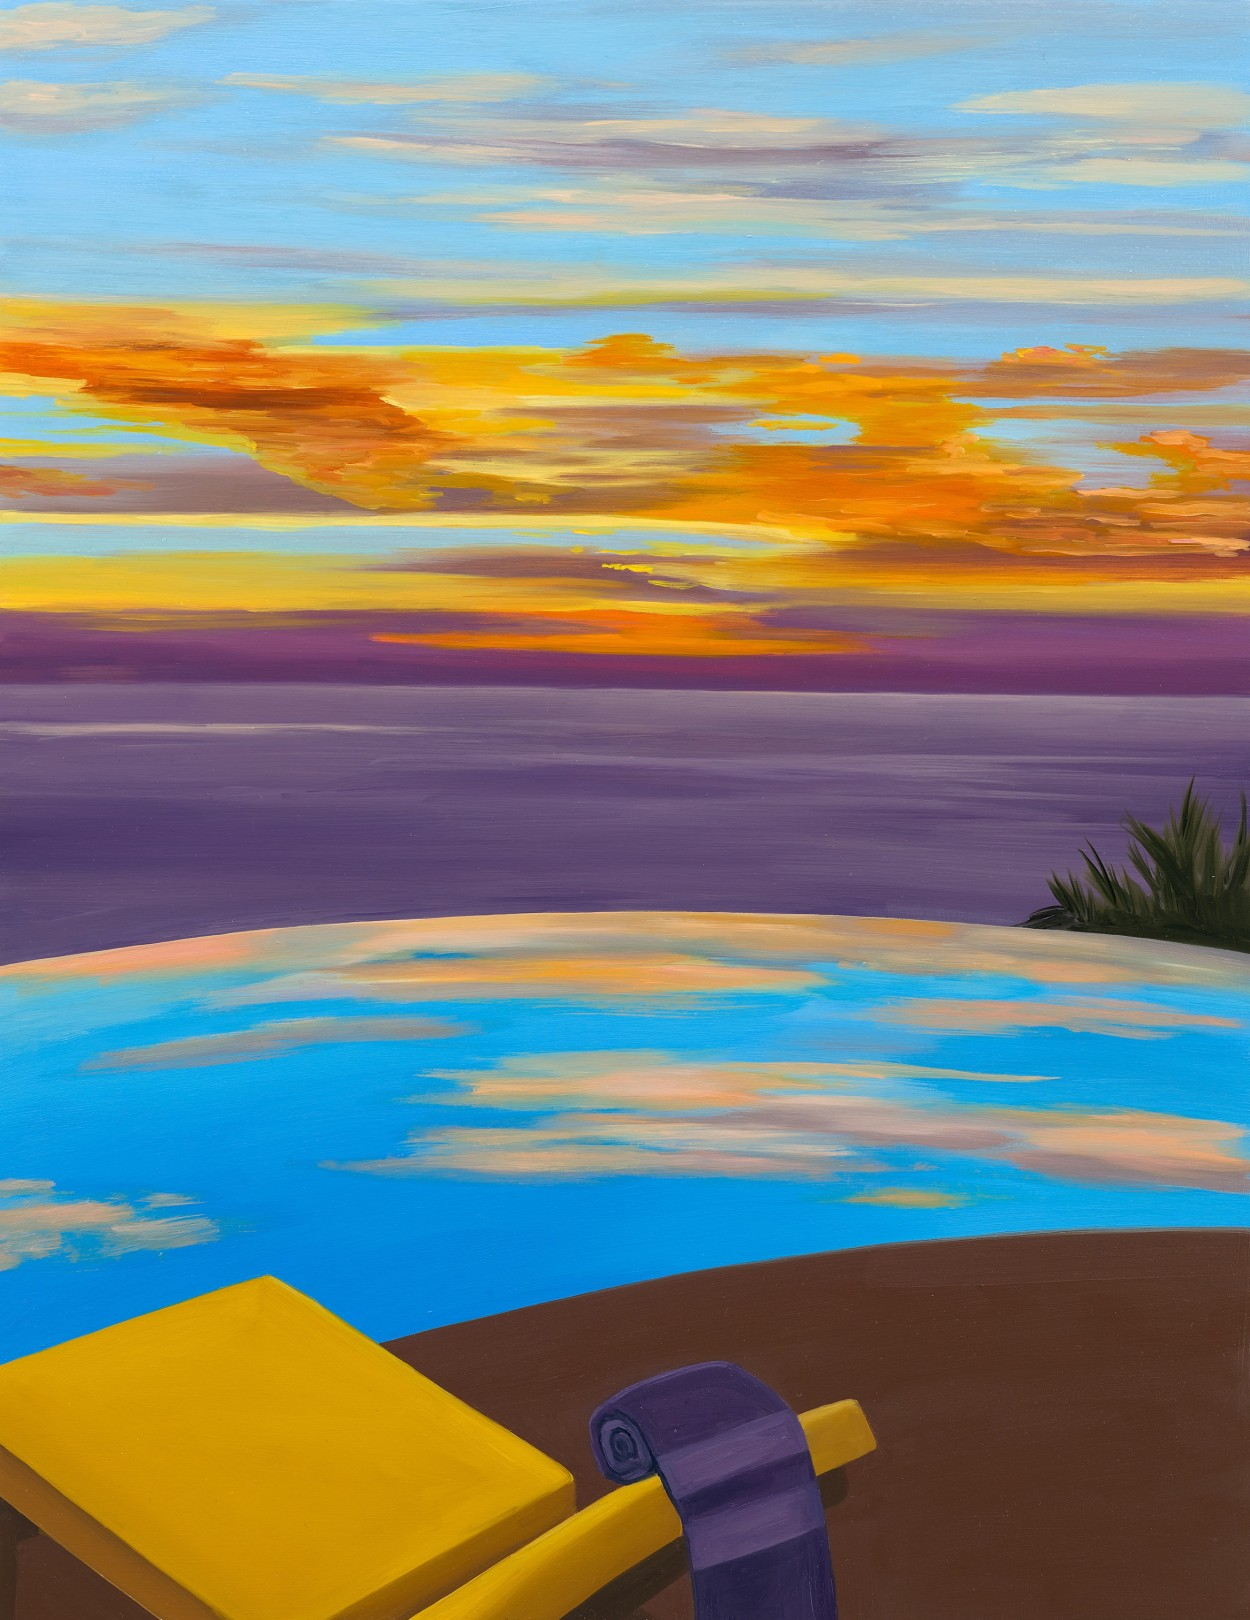 Private Sunset, 2021 Oil on panel 35.5 x 46 cm. / 14 x 18 in.